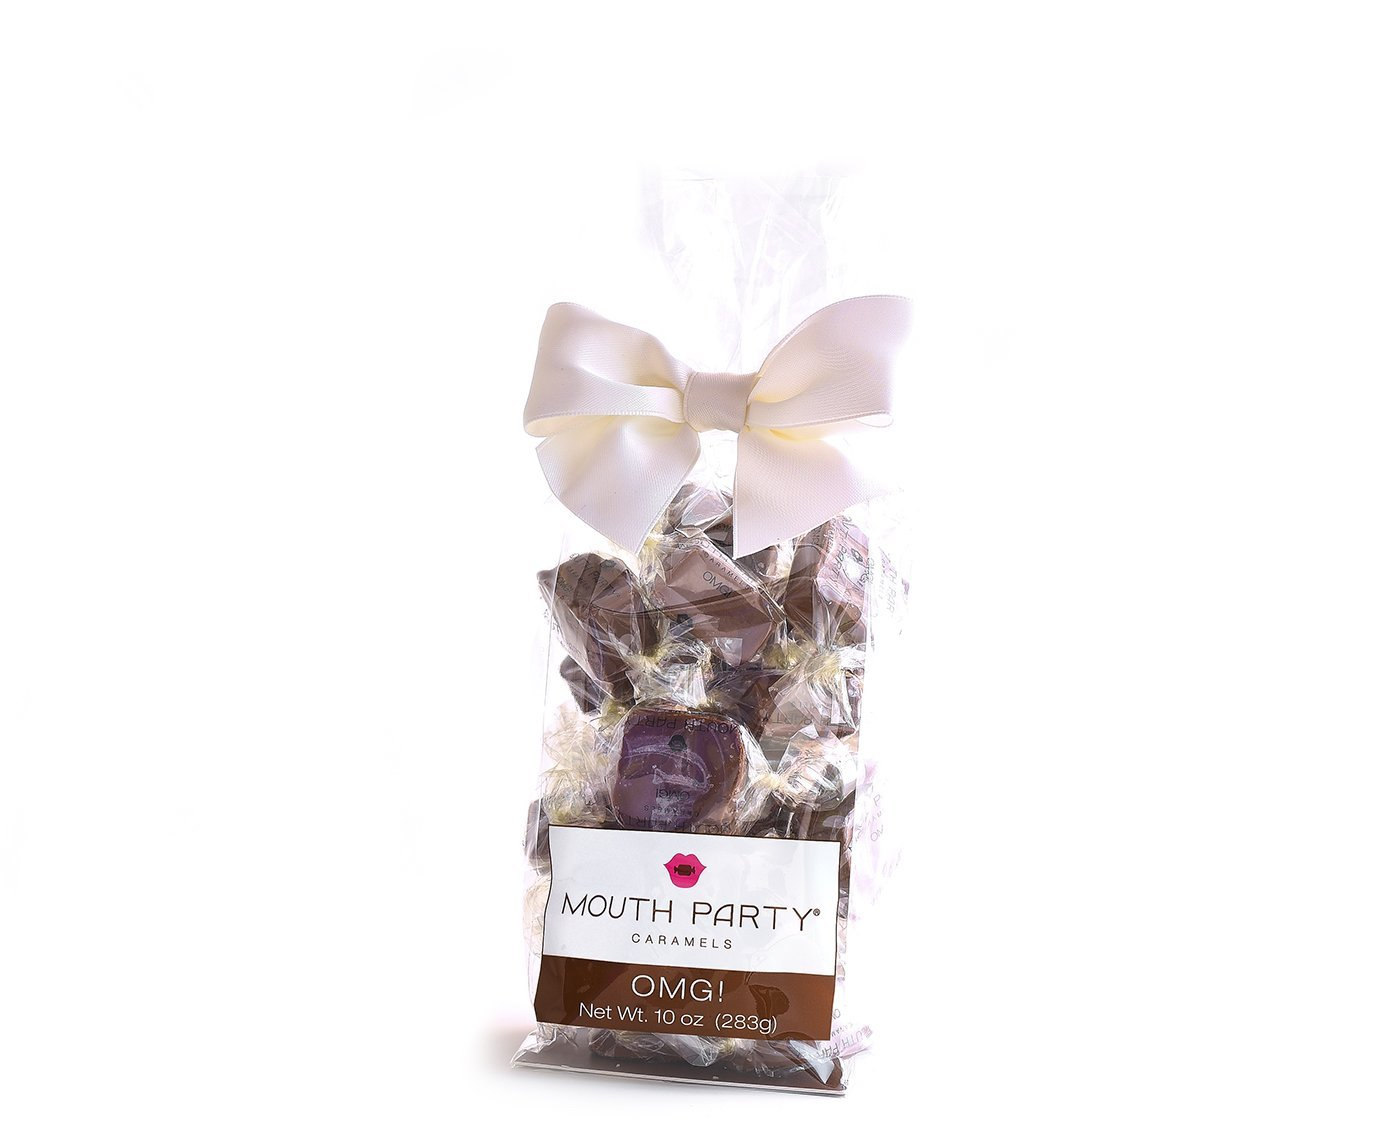 #10: Mouth Party Caramels - Perfect for your Dad's sweet tooth, these Mouth Party Caramels are delicious, local, and made with all natural ingredients.